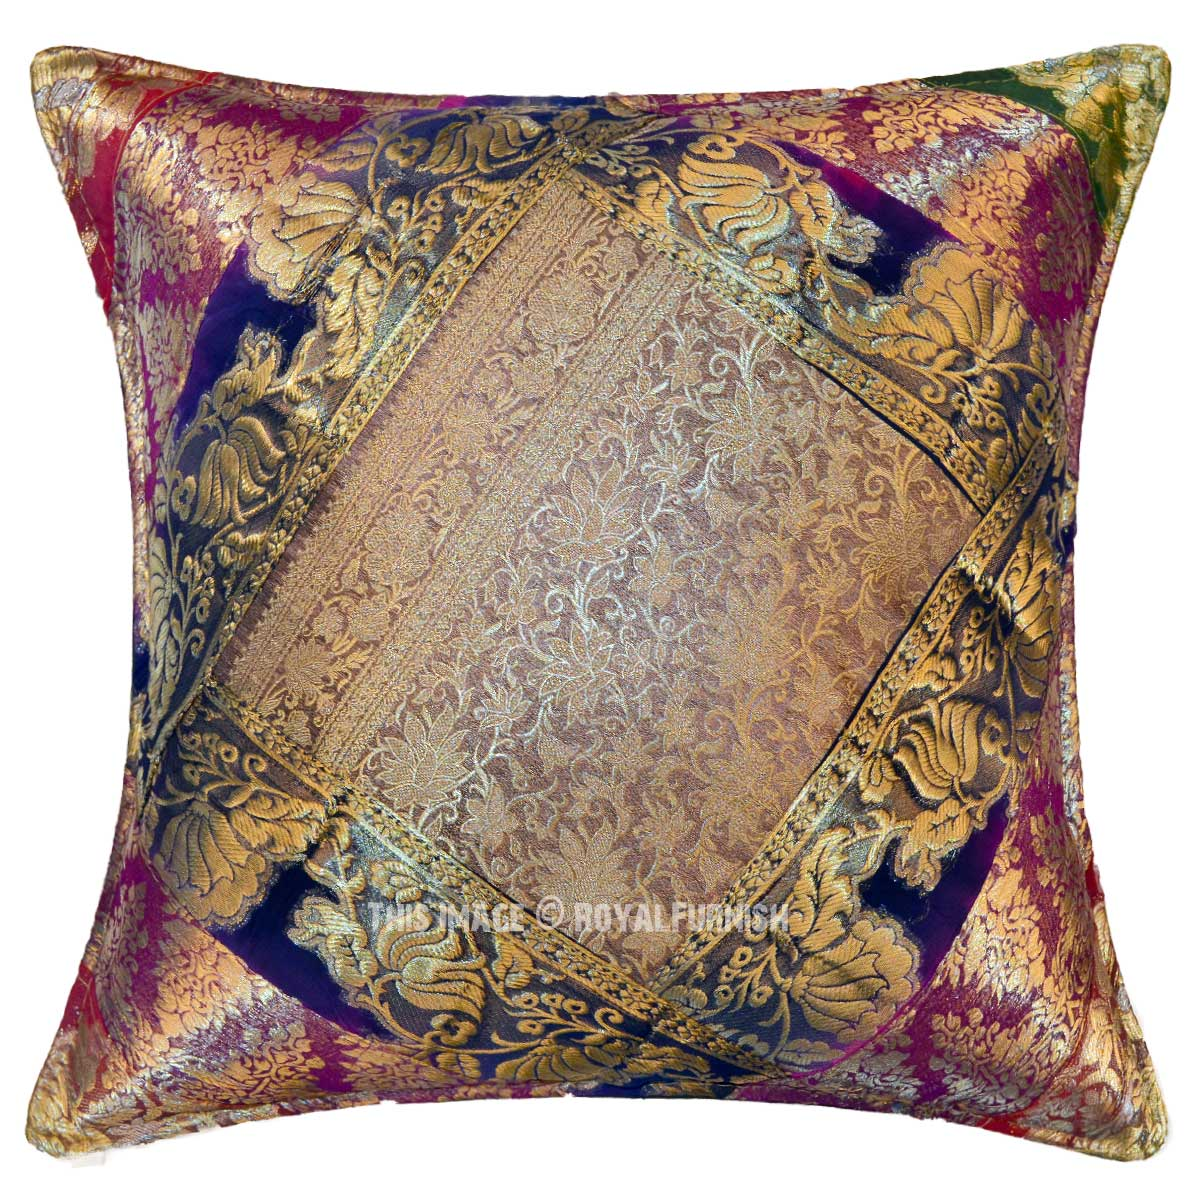 Decorative And Bohemian Multi India Old Sari Made Throw